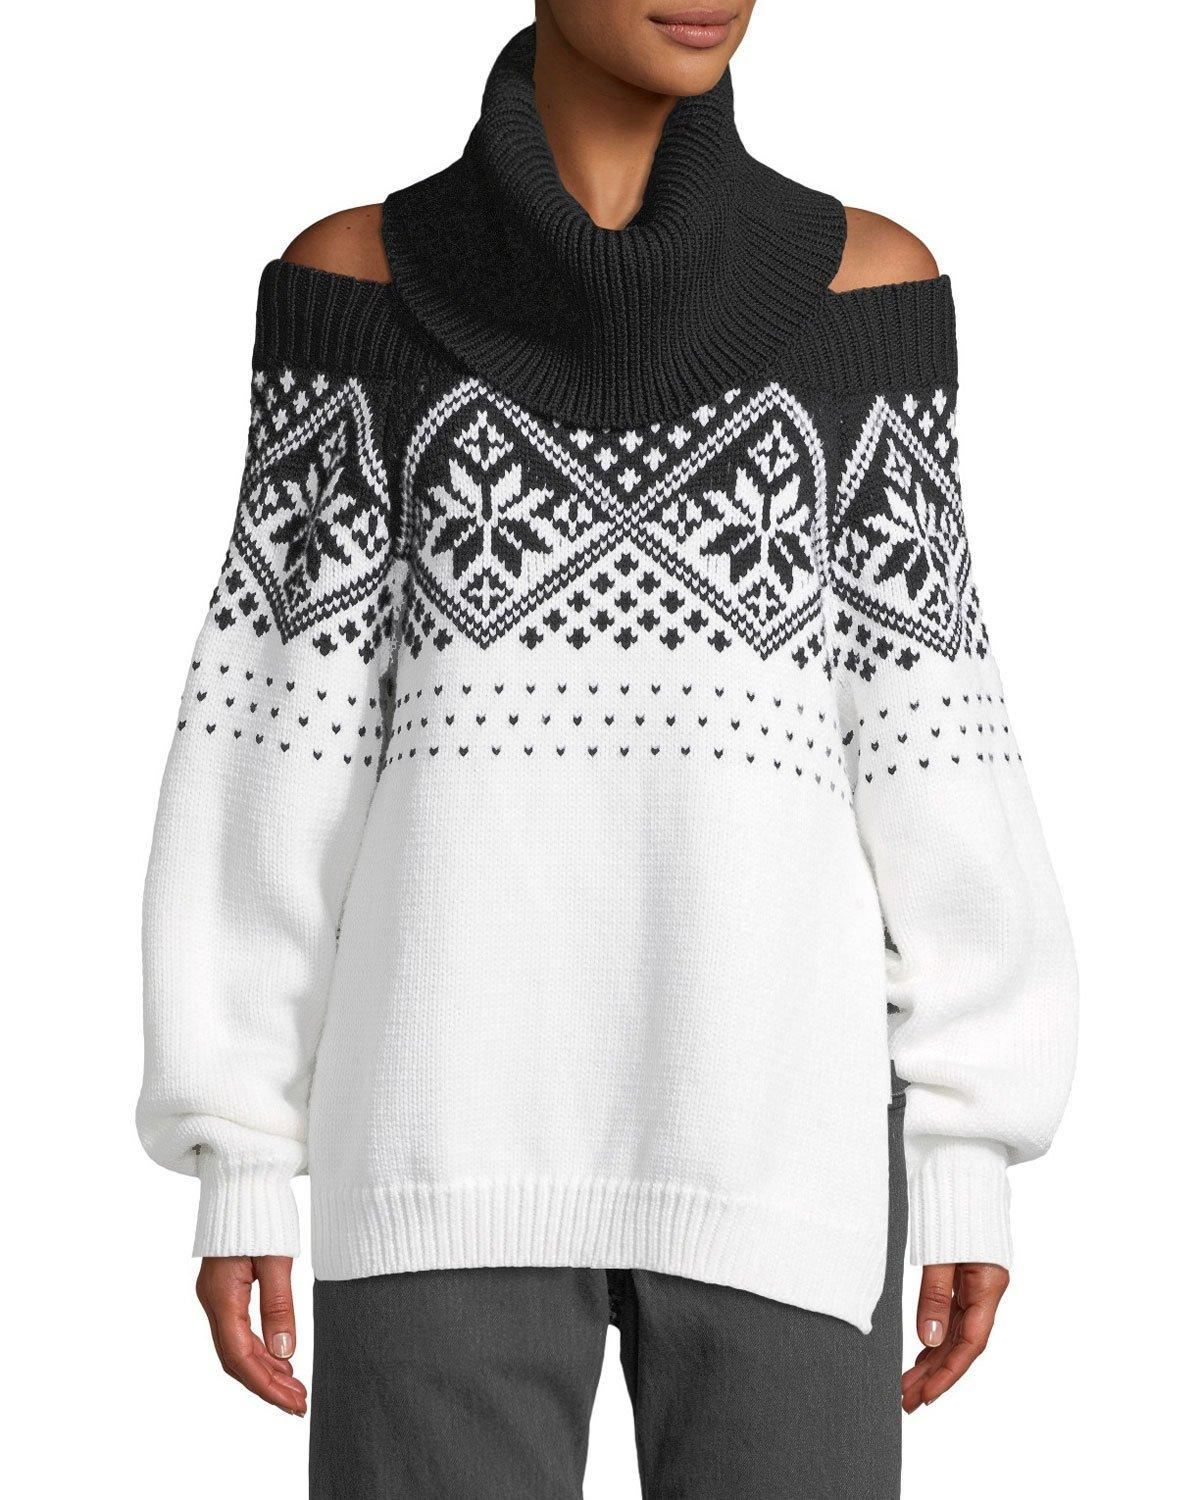 44e1b19f0c7bc9 Monse Turtleneck Off-The-Shoulder Intarsia Knit Wool Sweater In Black